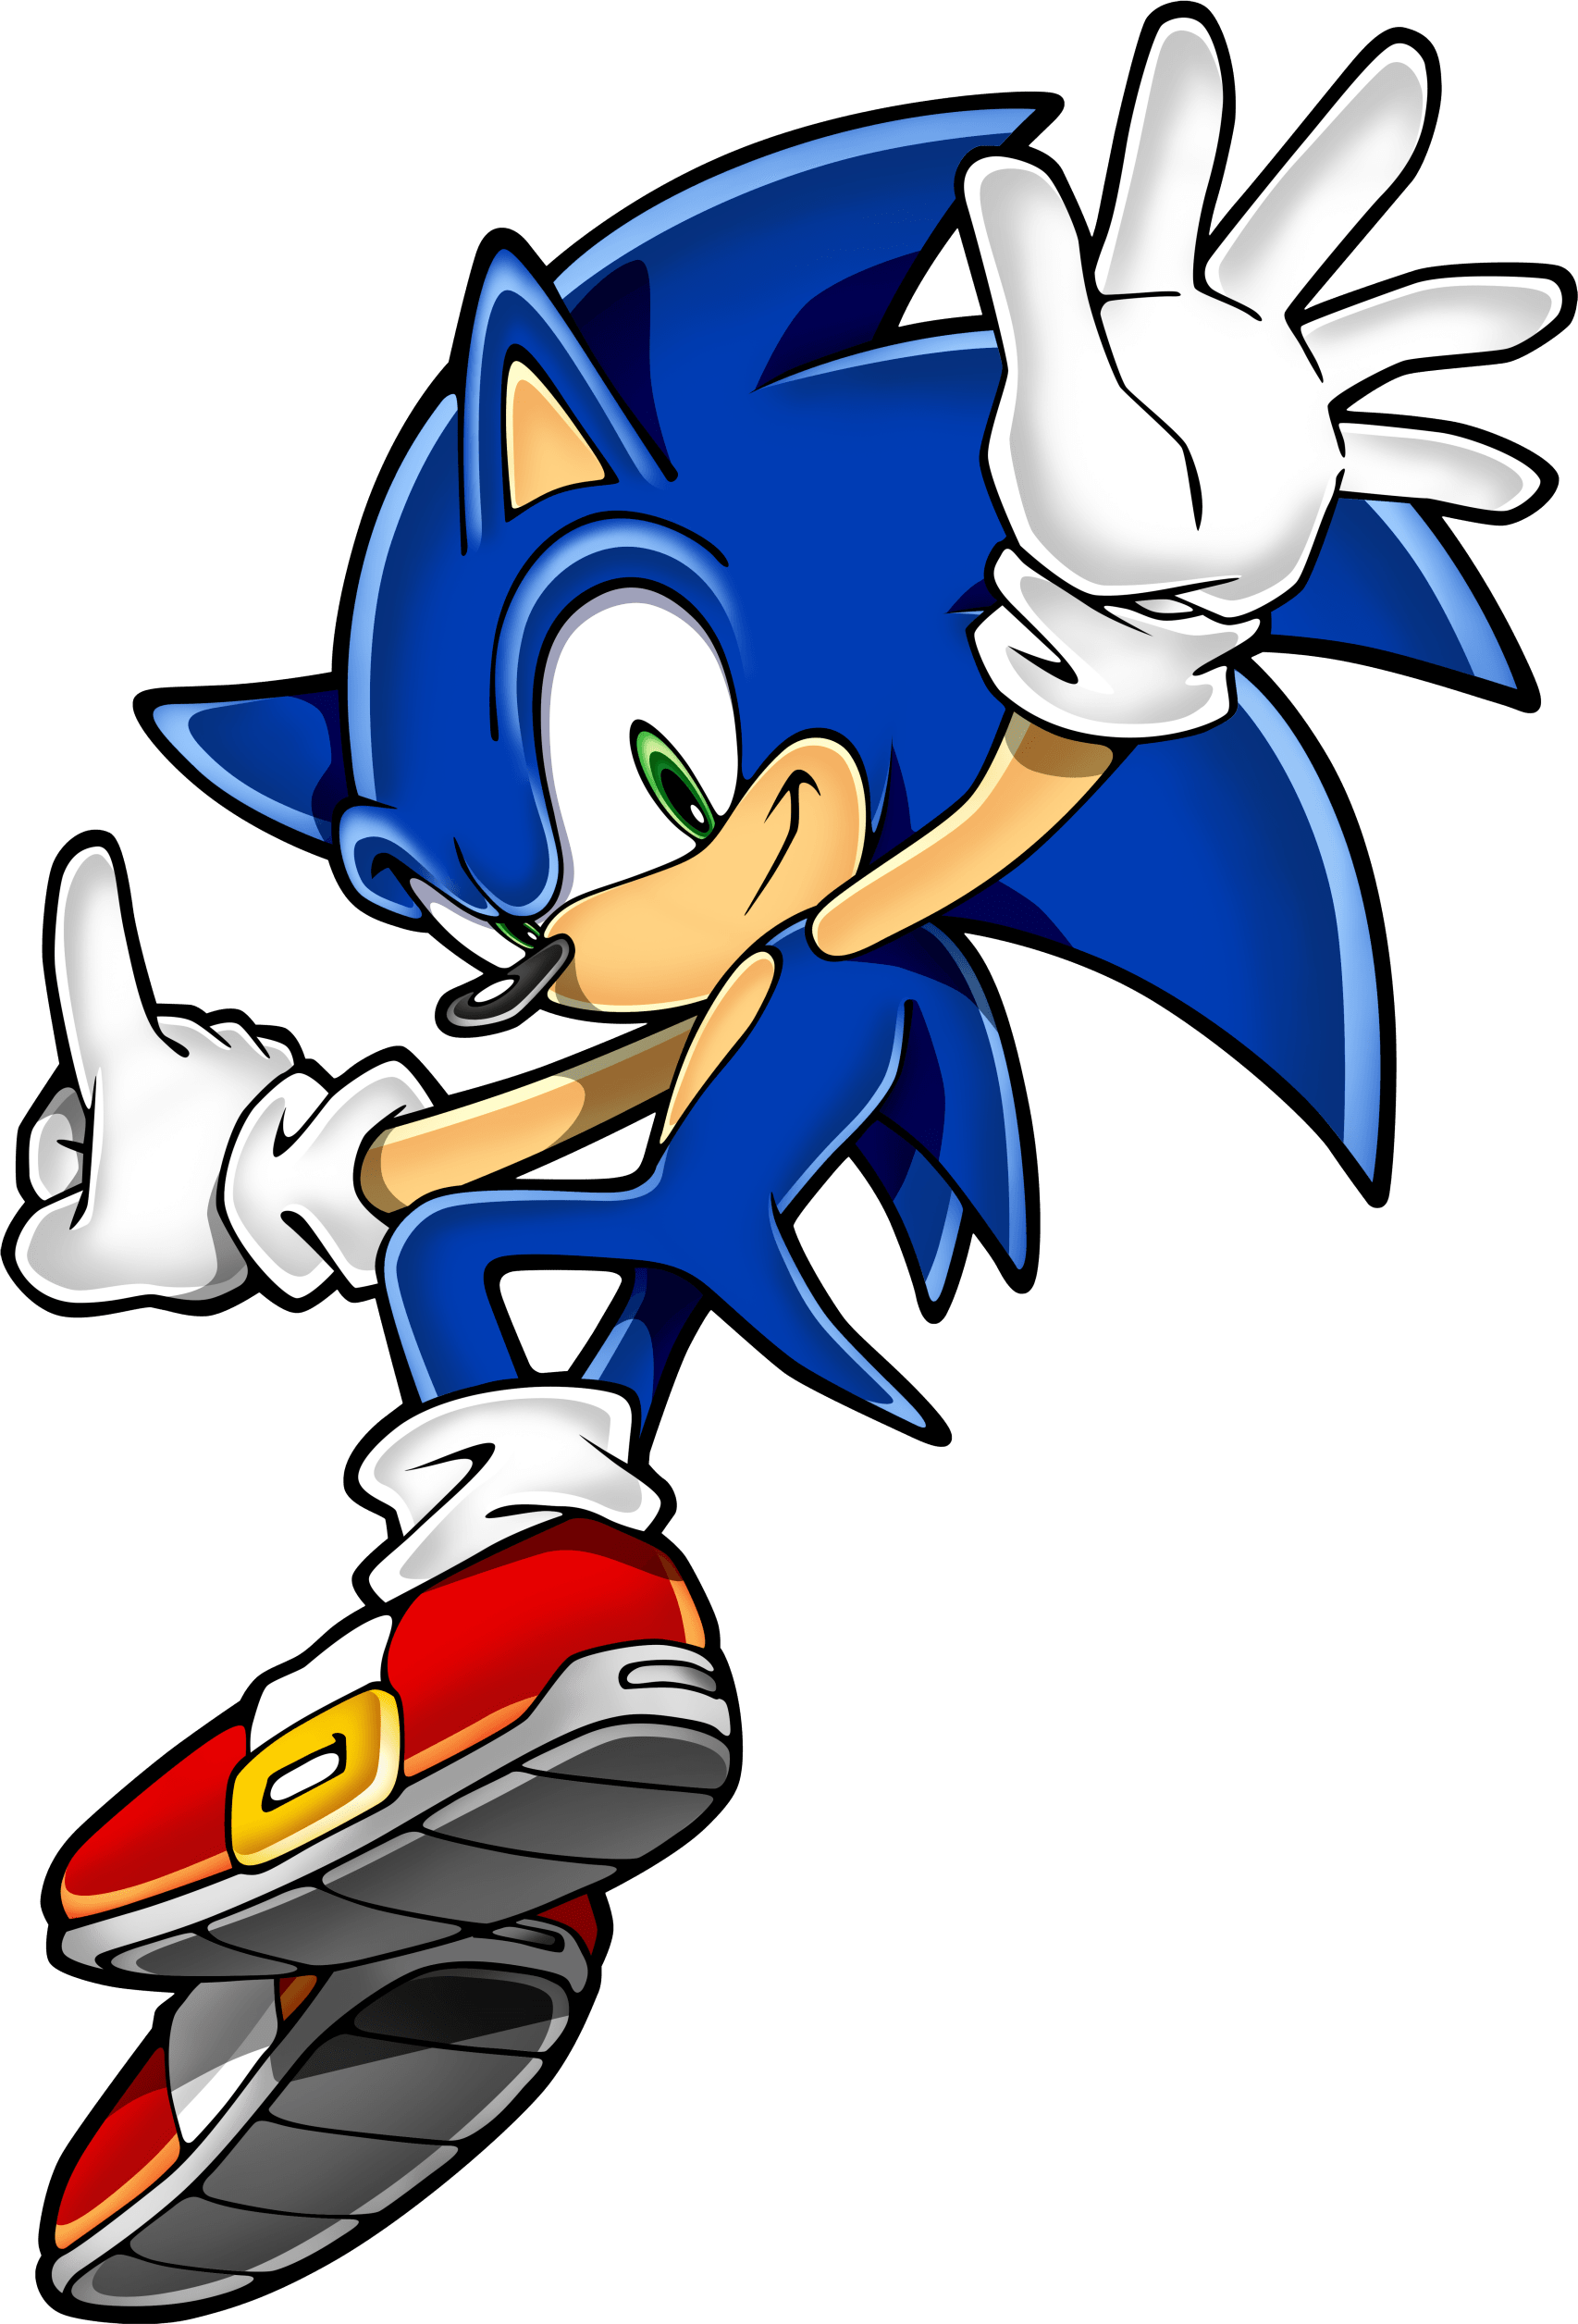 Sonic Hedgehog Jumping Transparent Png Stickpng